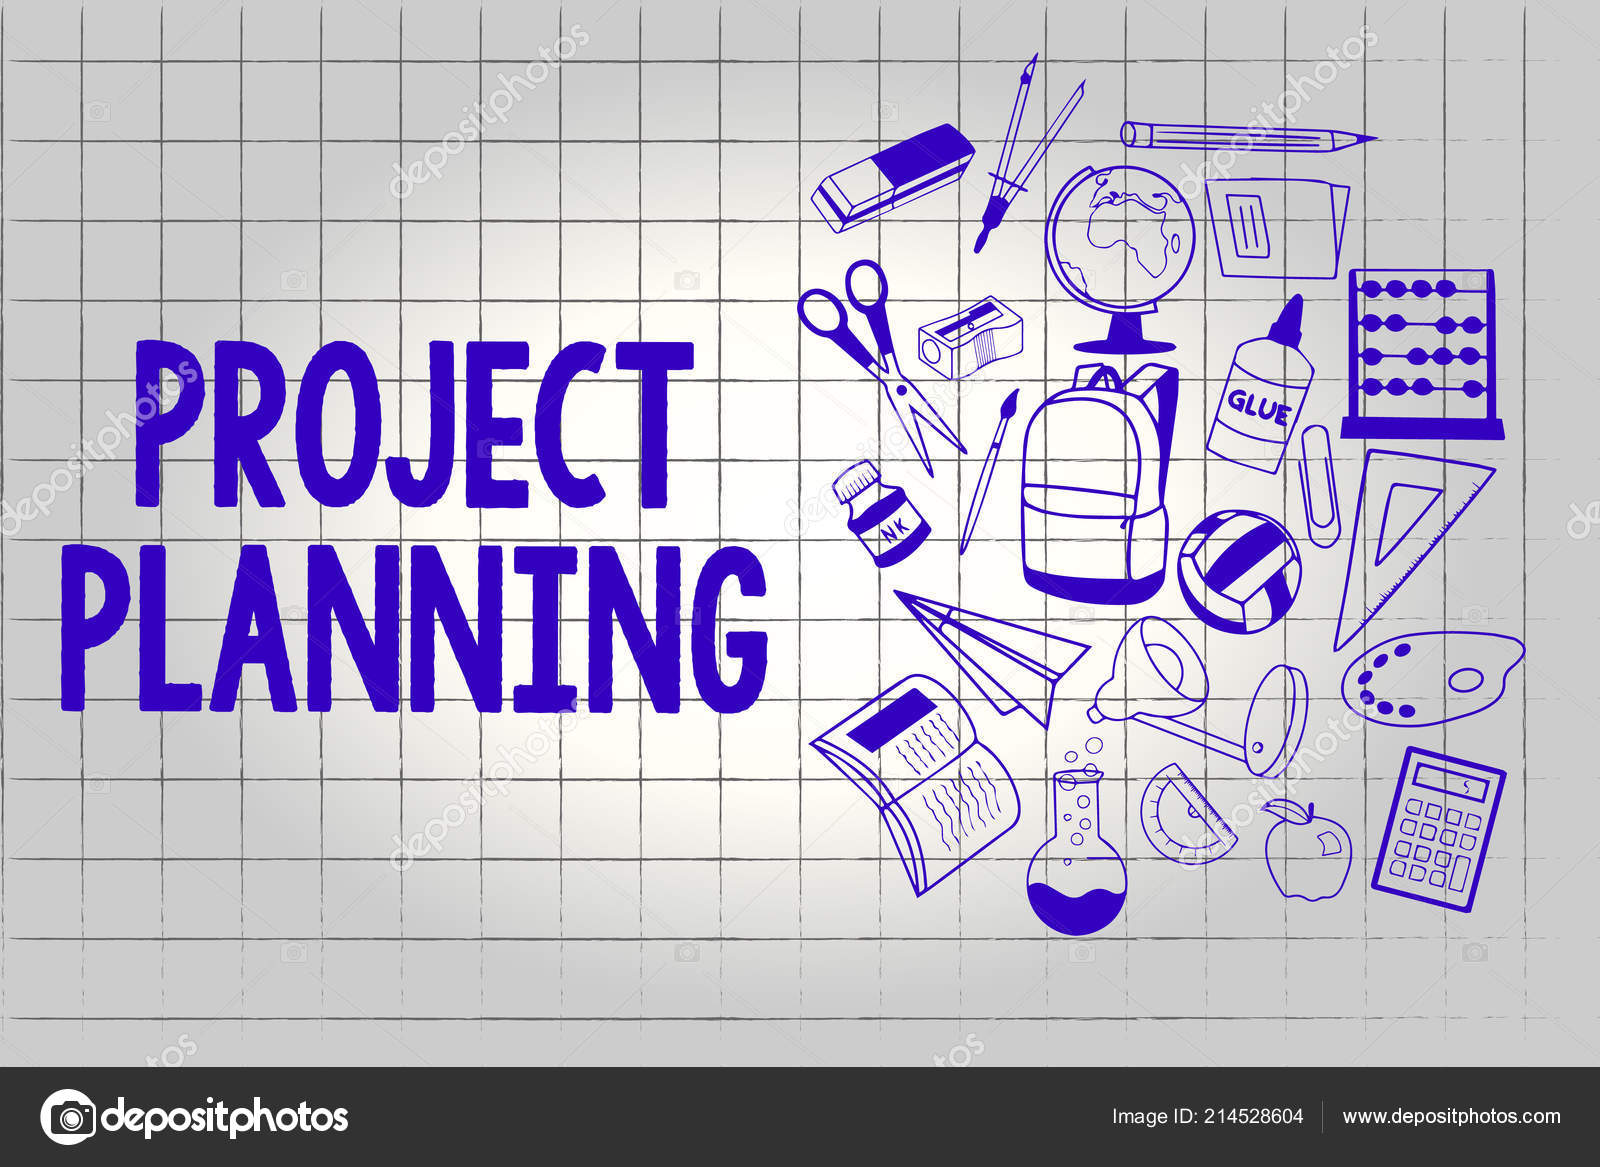 Handwriting Text Project Planning Concept Meaning Schedules Such As Gantt Charts To Plan Report Progress Stock Photo C Artursz 214528604